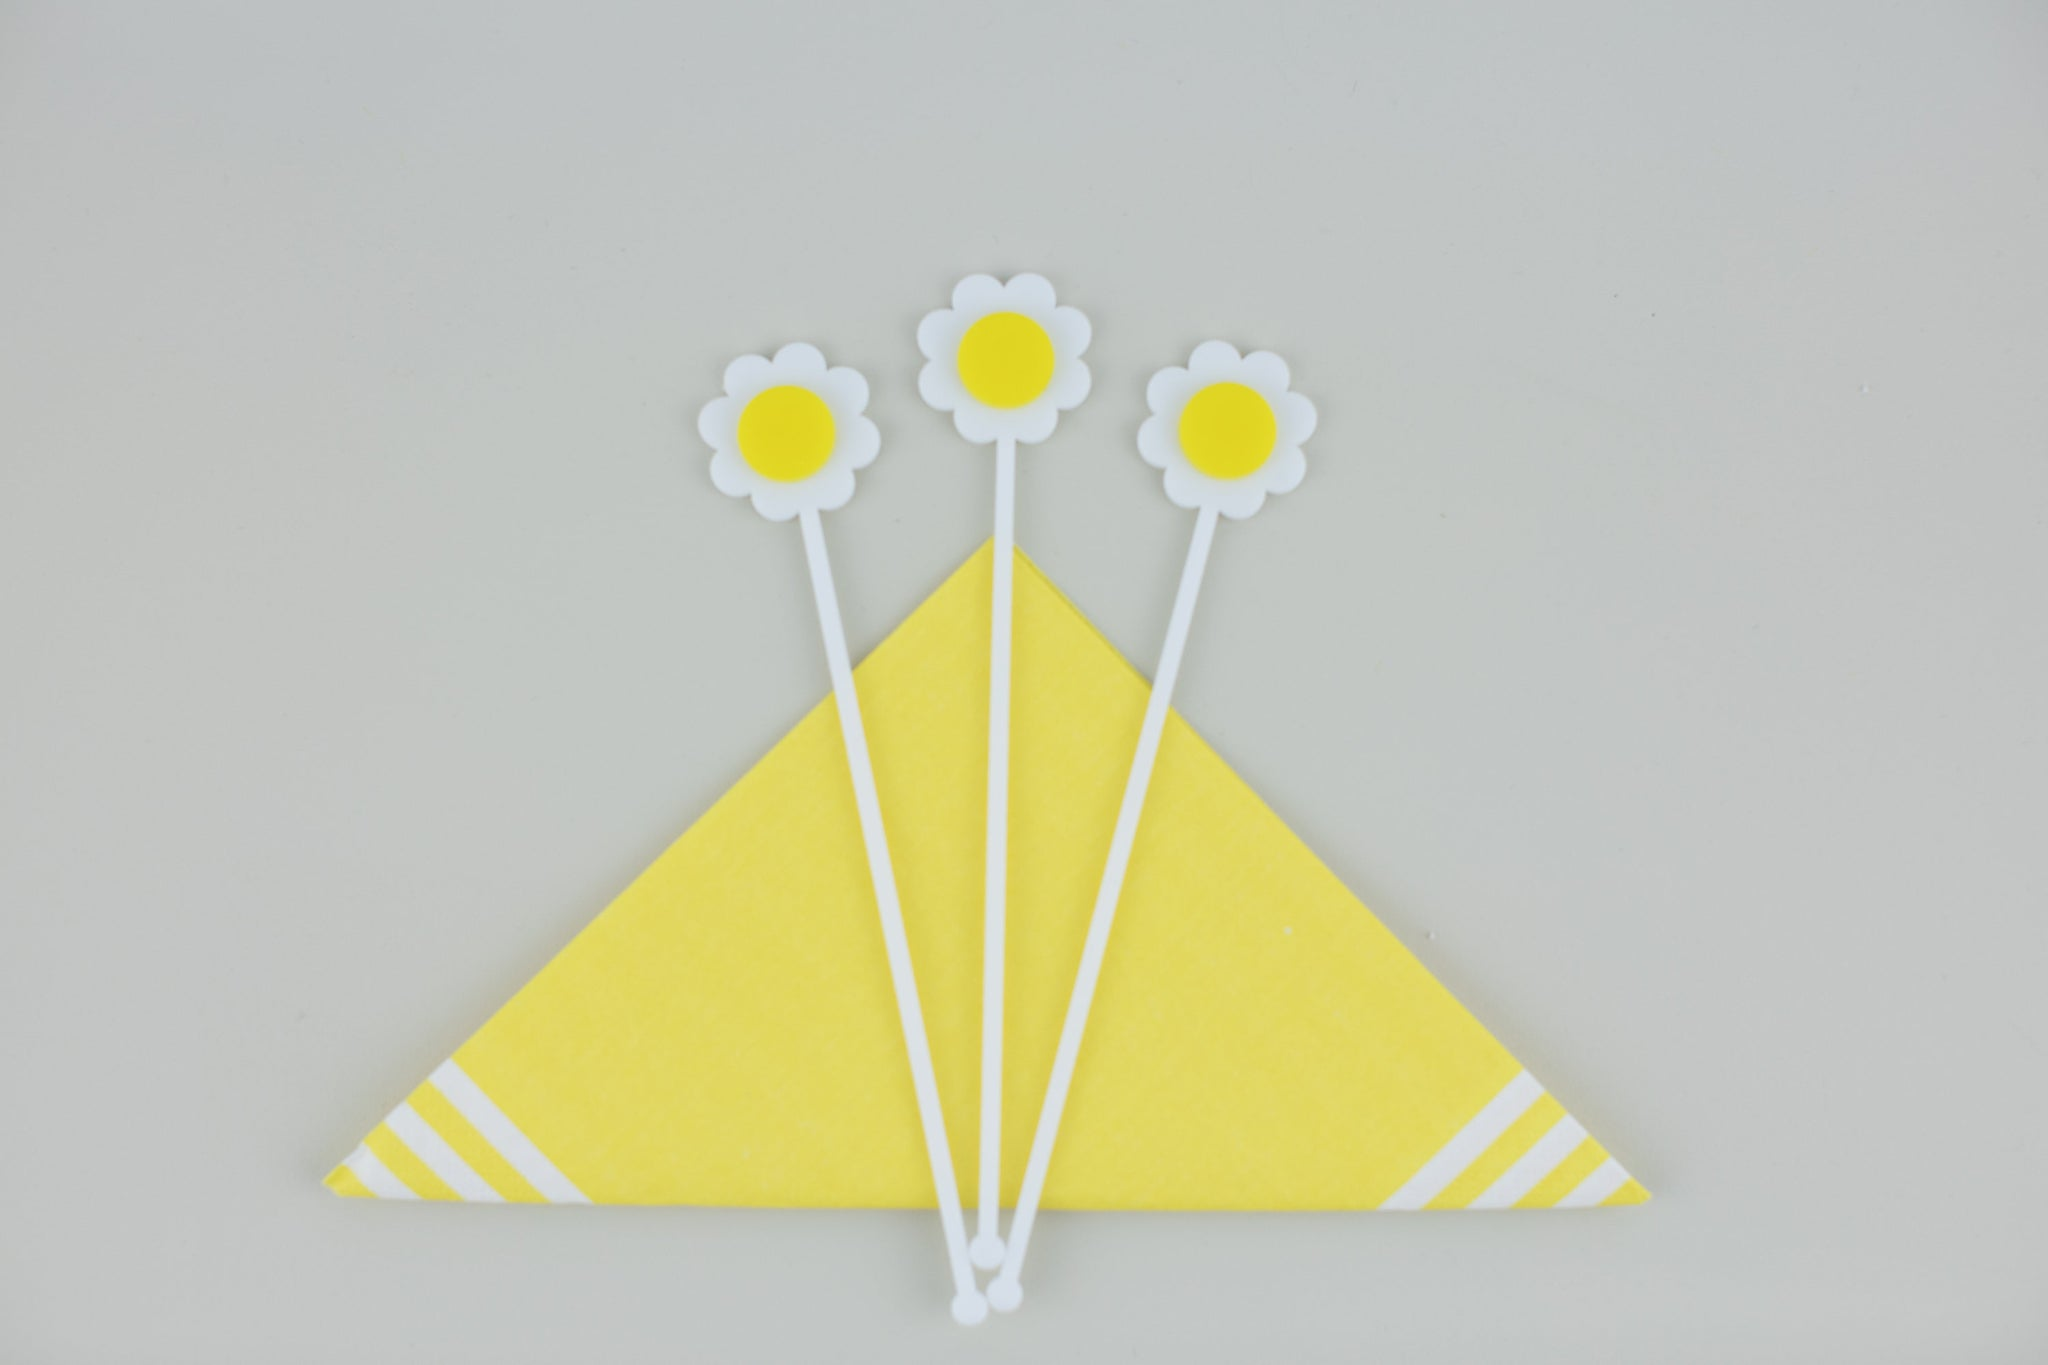 Daisy Cocktail Swizzle Sticks, Stir Sticks, Drink Stirrers Laser Cut, Acrylic, 6 Ct. - Mother's Day